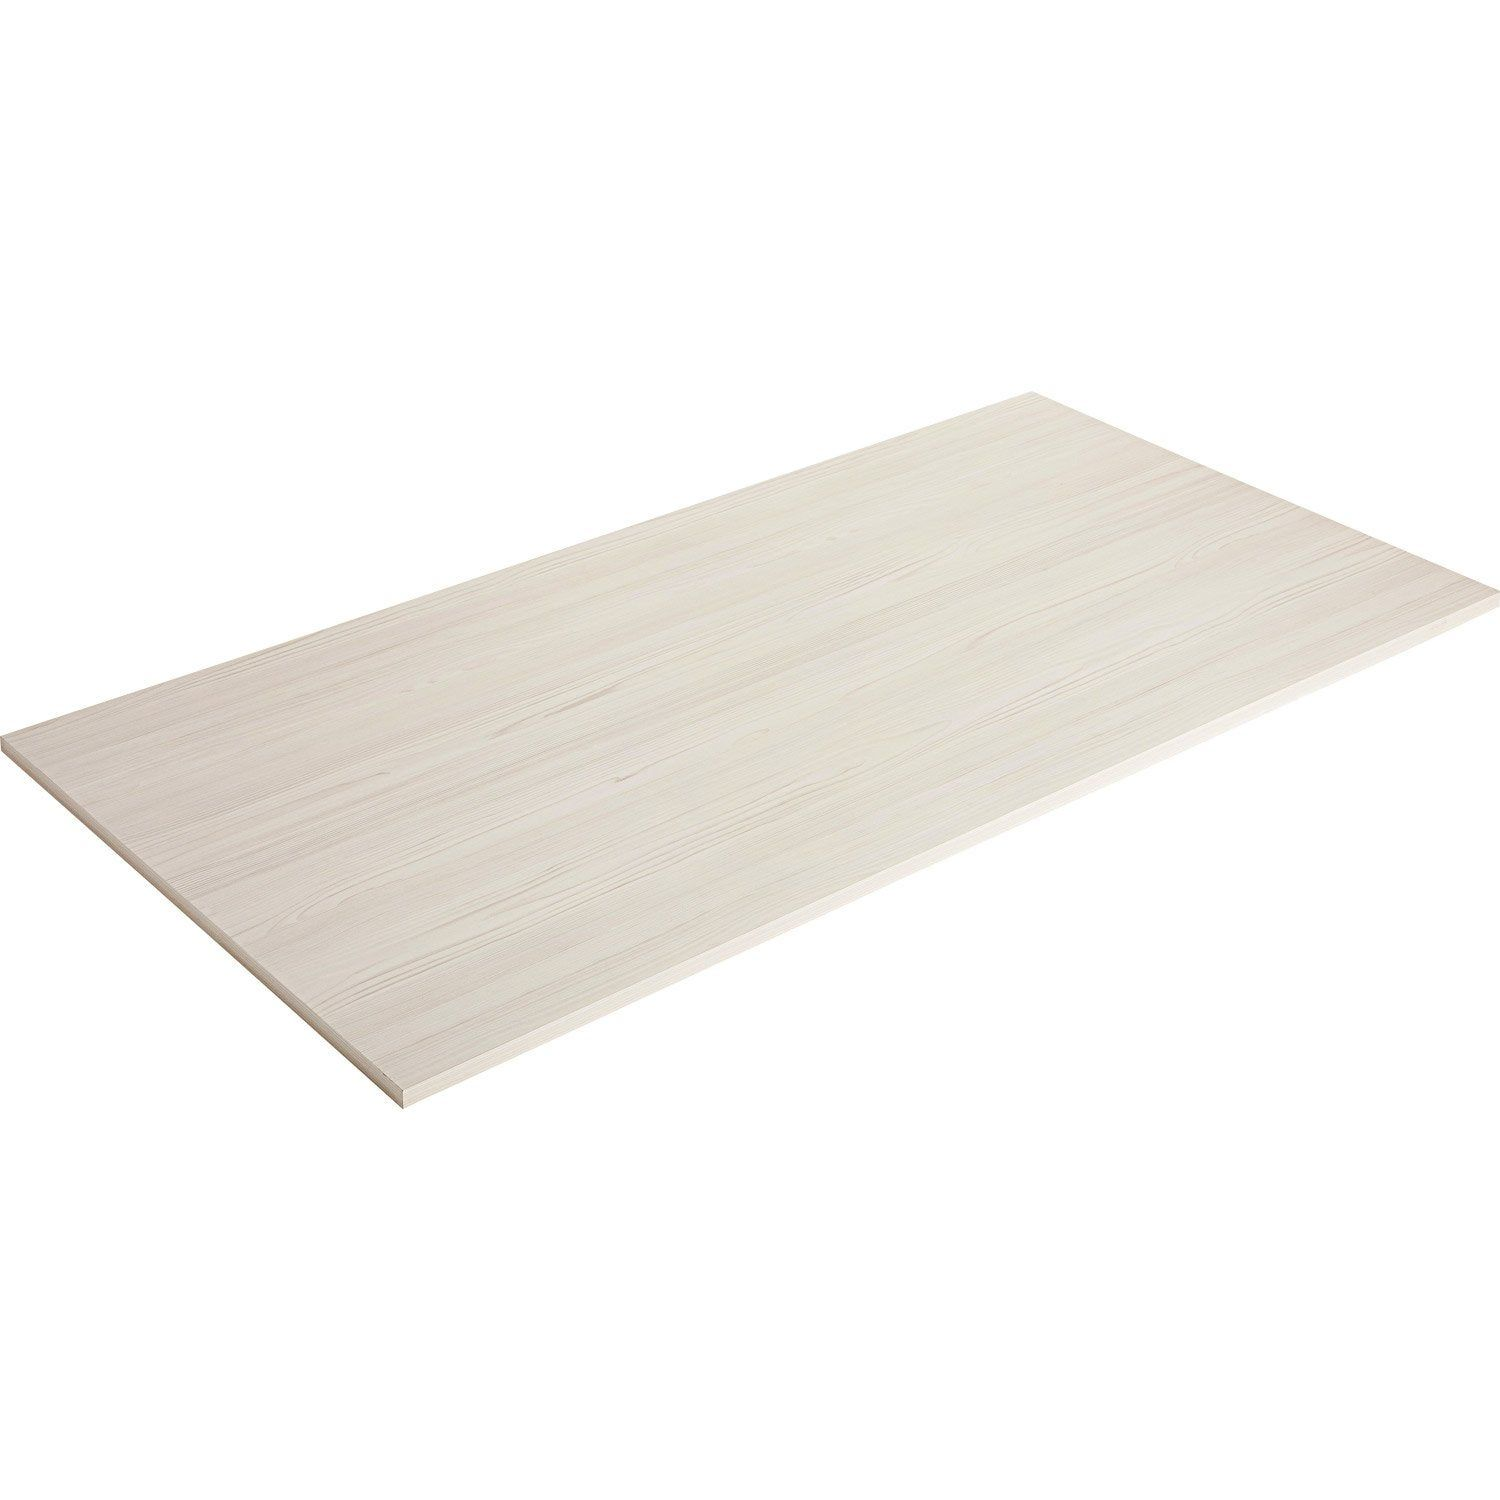 Plateau De Table Agglomere Pin Blanchi Spaceo L 160 X L 80 Cm X Ep 22 Mm Plateau De Table Plateau Table